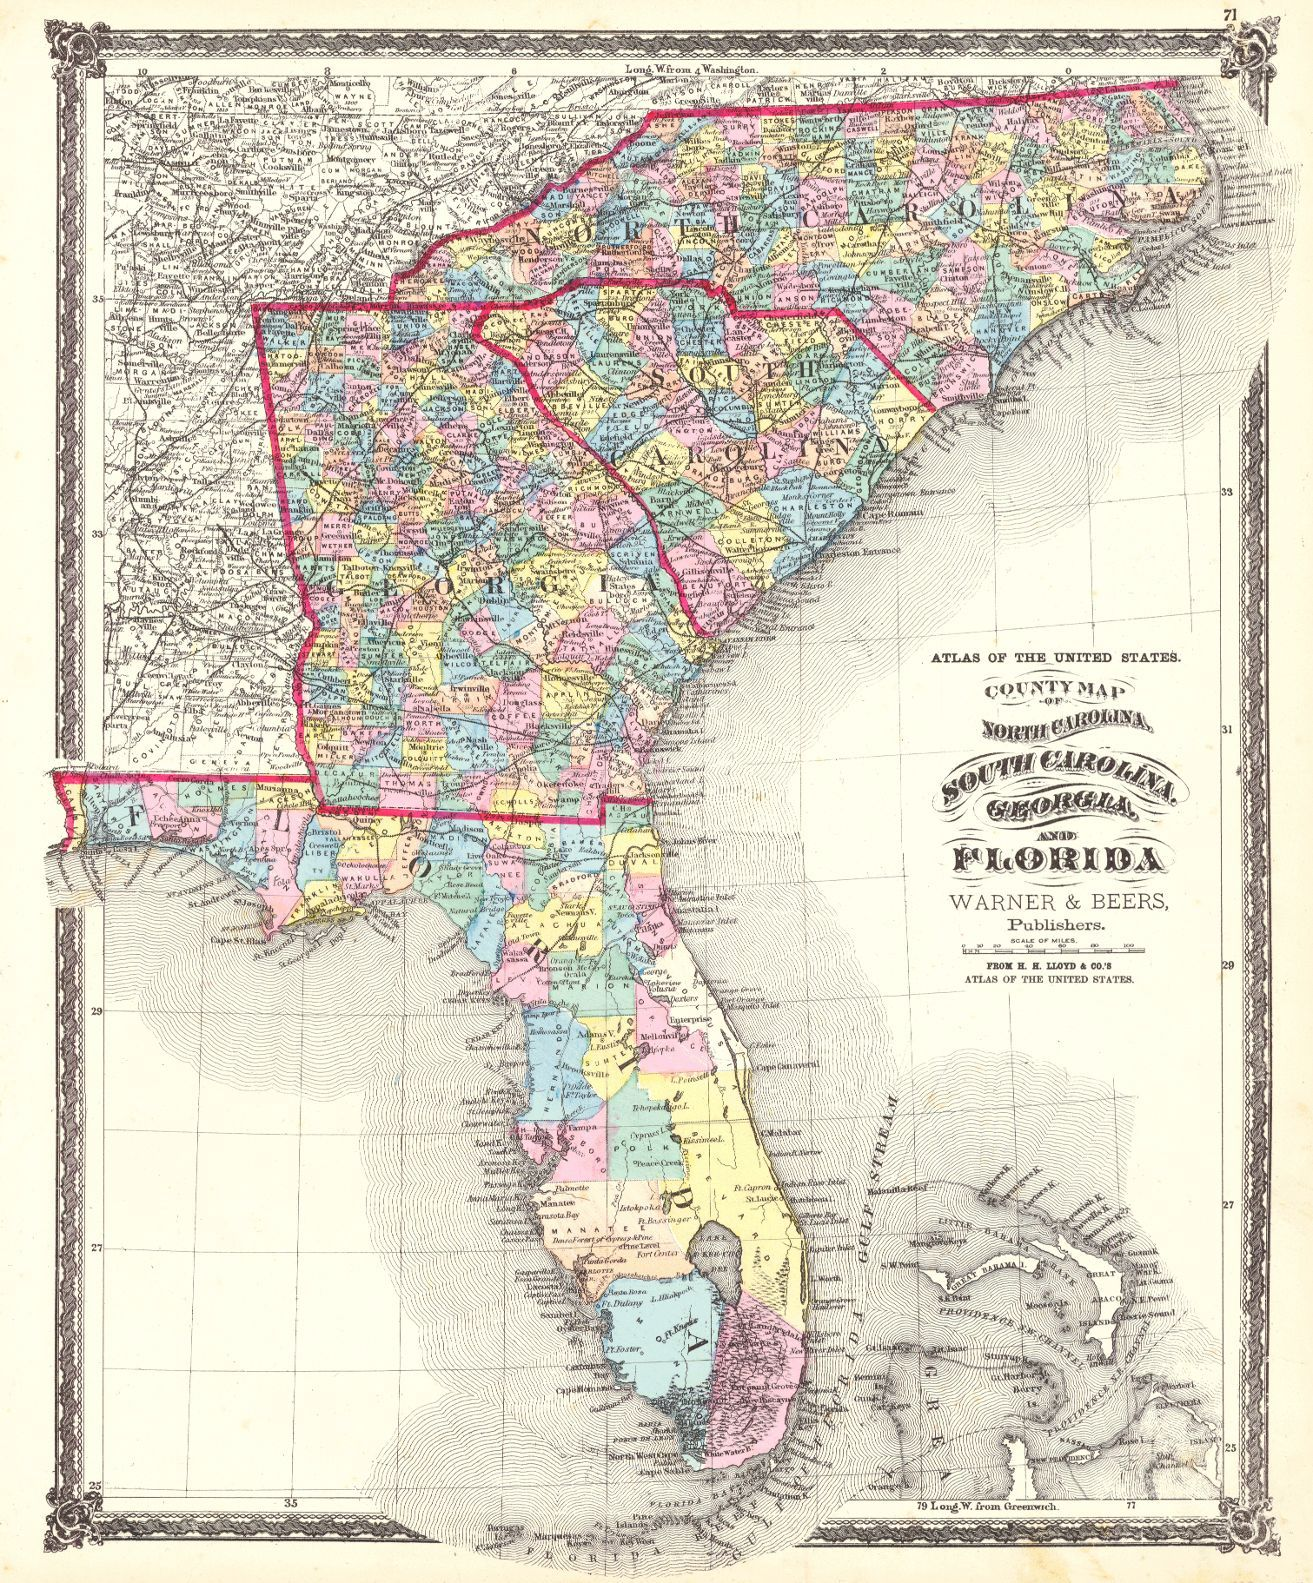 Map Of Georgia And South Carolina Atlas of the United States. County Map of North Carolina, South